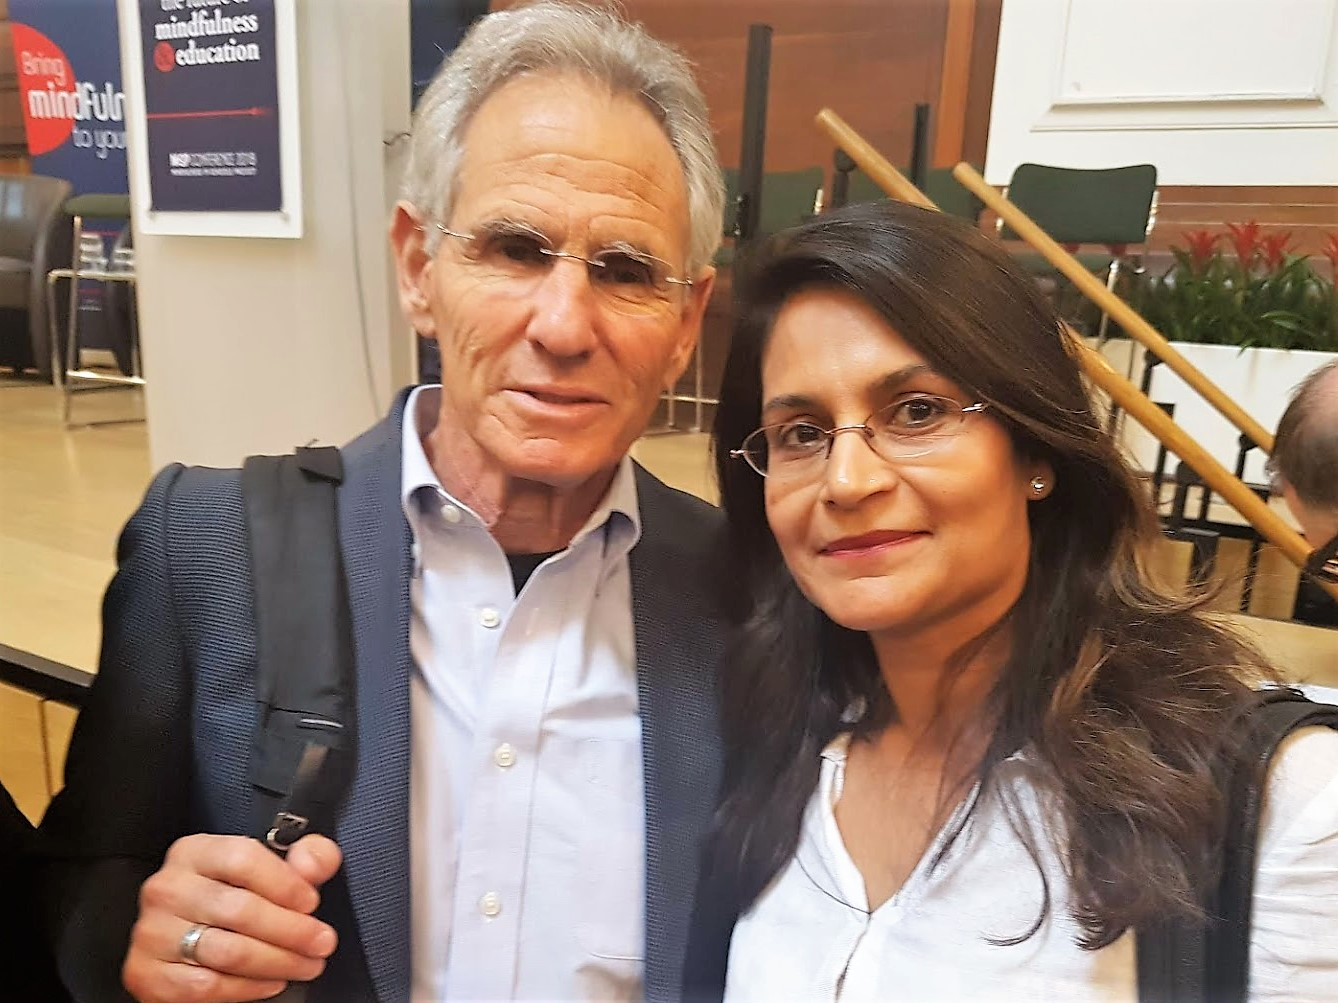 With Jon-Kabat Zinn at a conference in London.